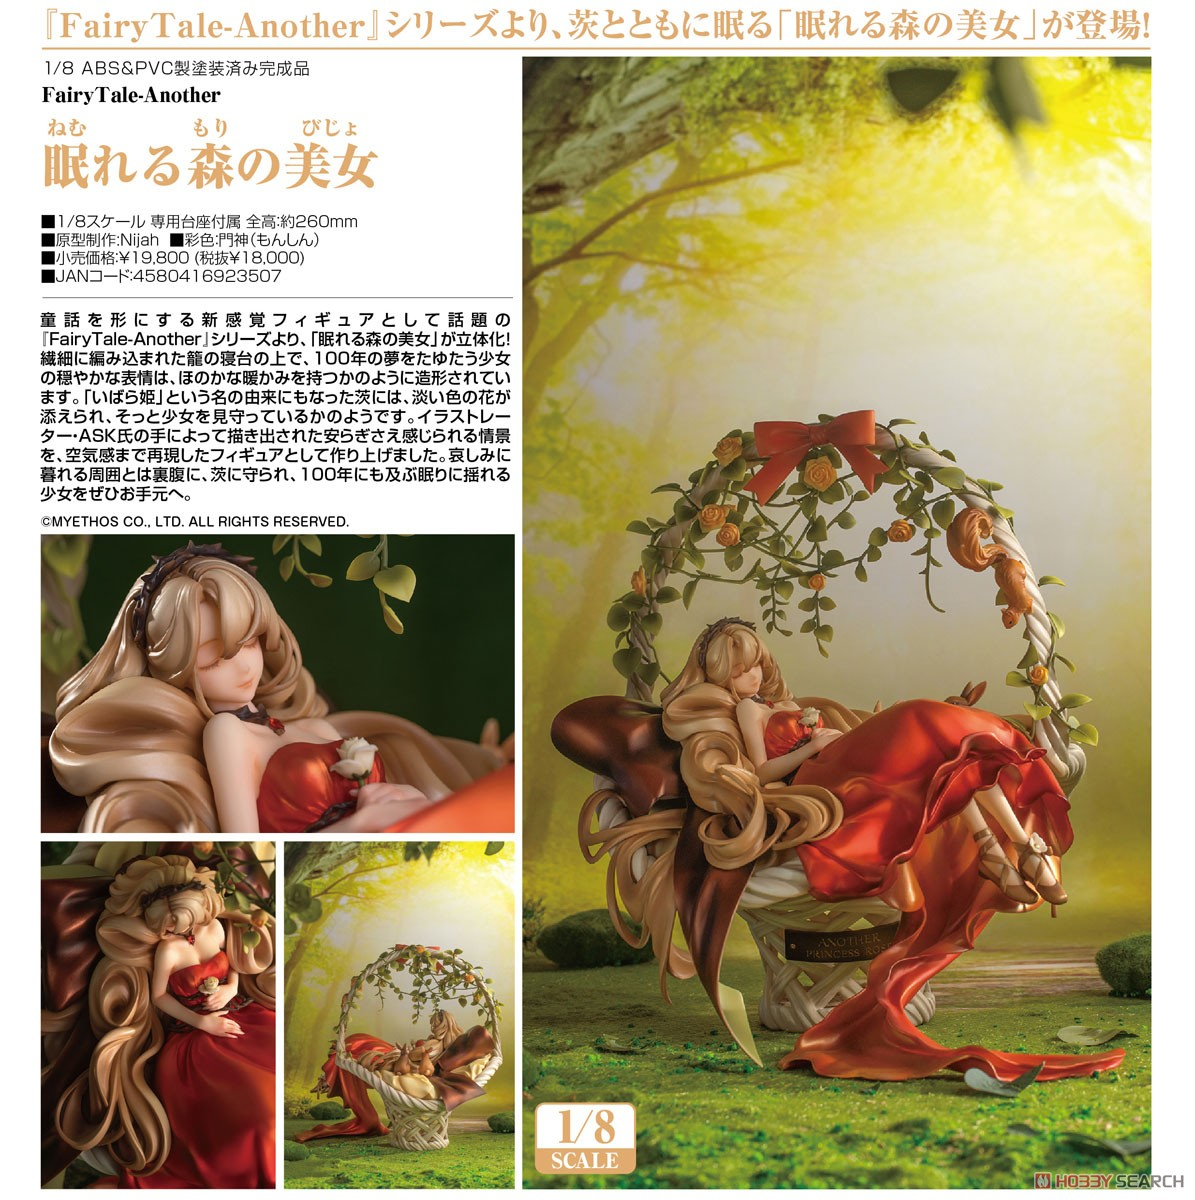 FairyTale-Another『眠れる森の美女』1/8 完成品フィギュア-014